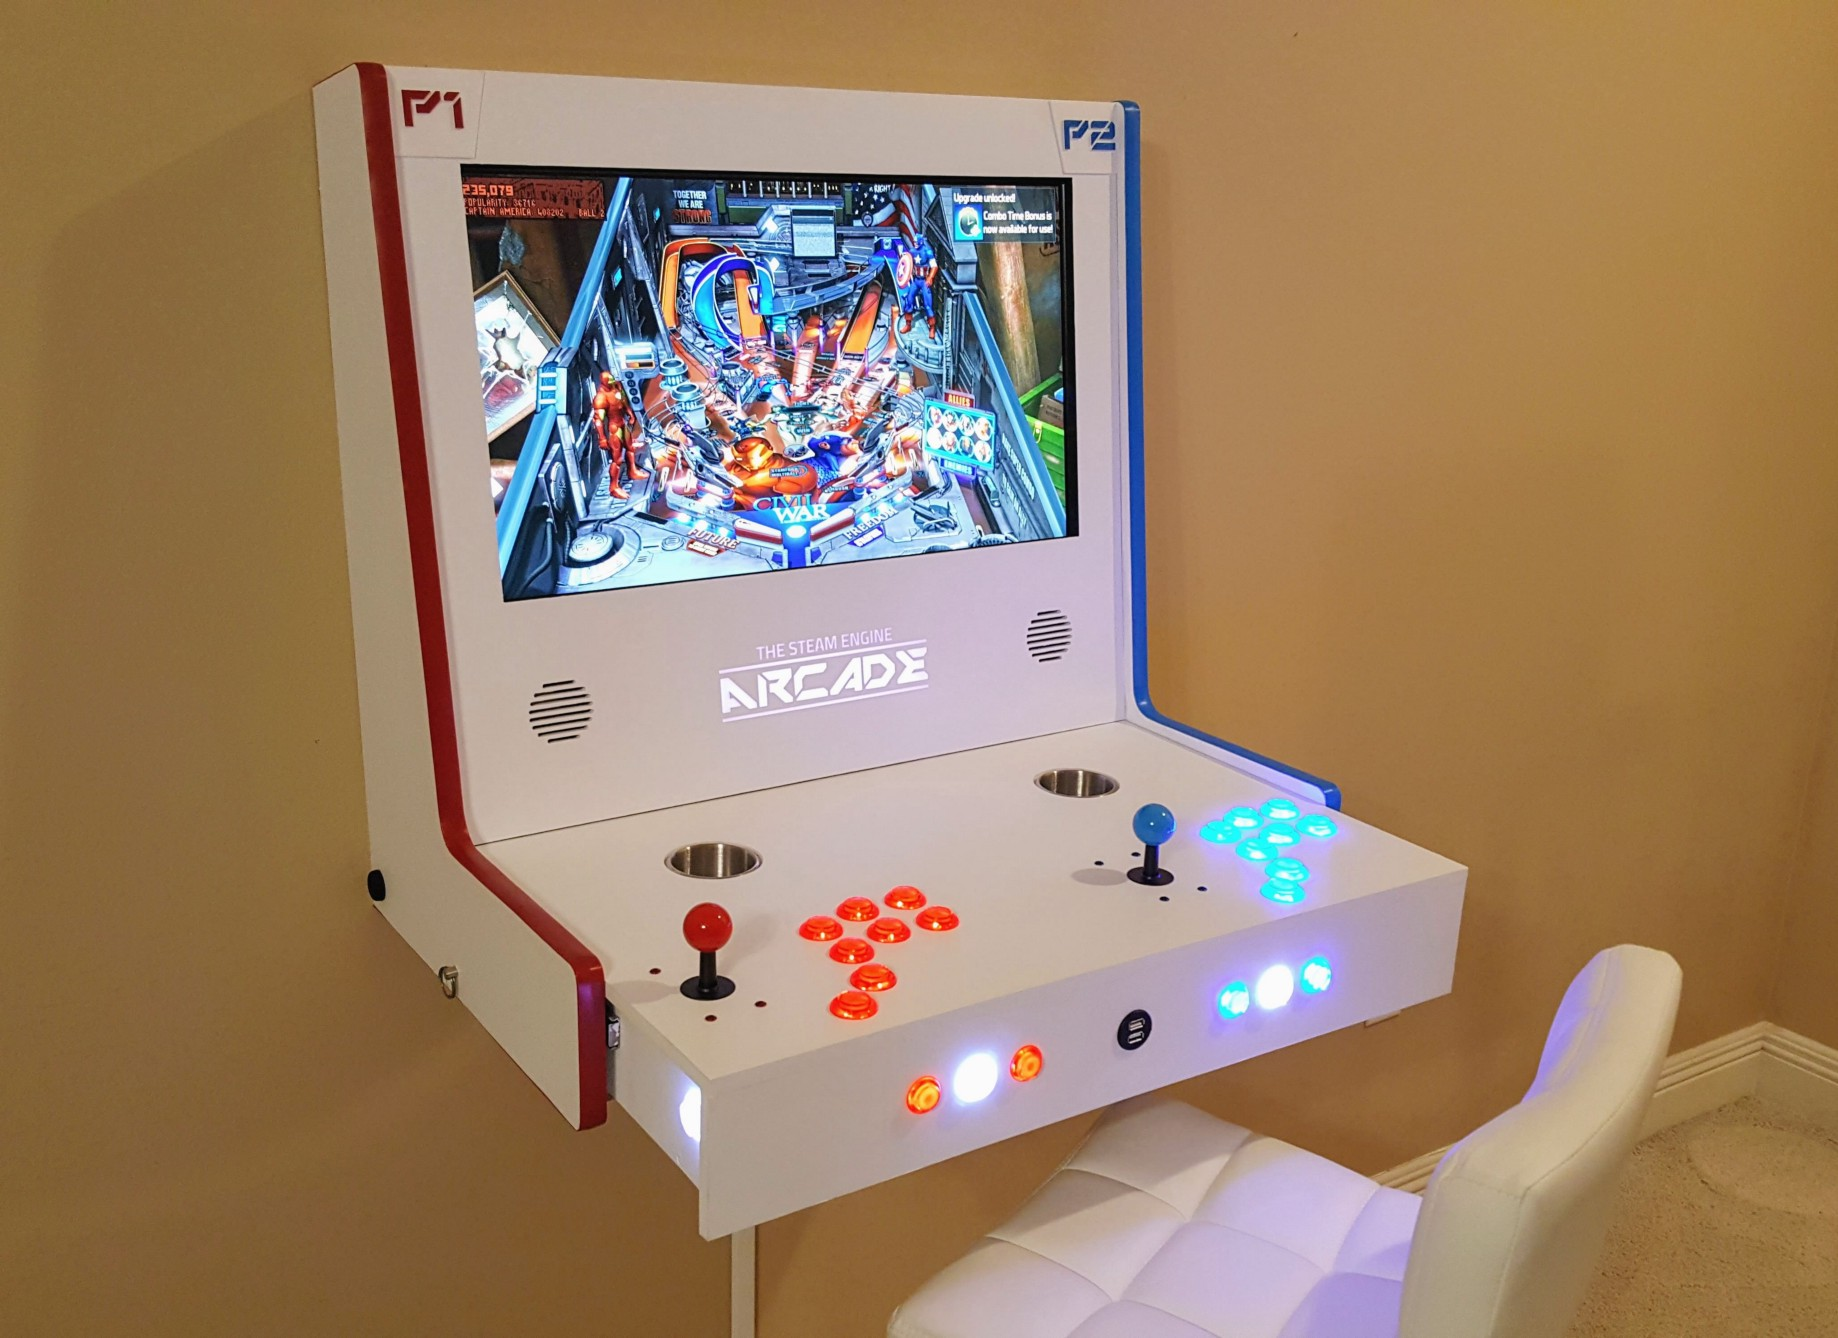 Check Out This Gorgeous Steam Link-Based Arcade Cabinet